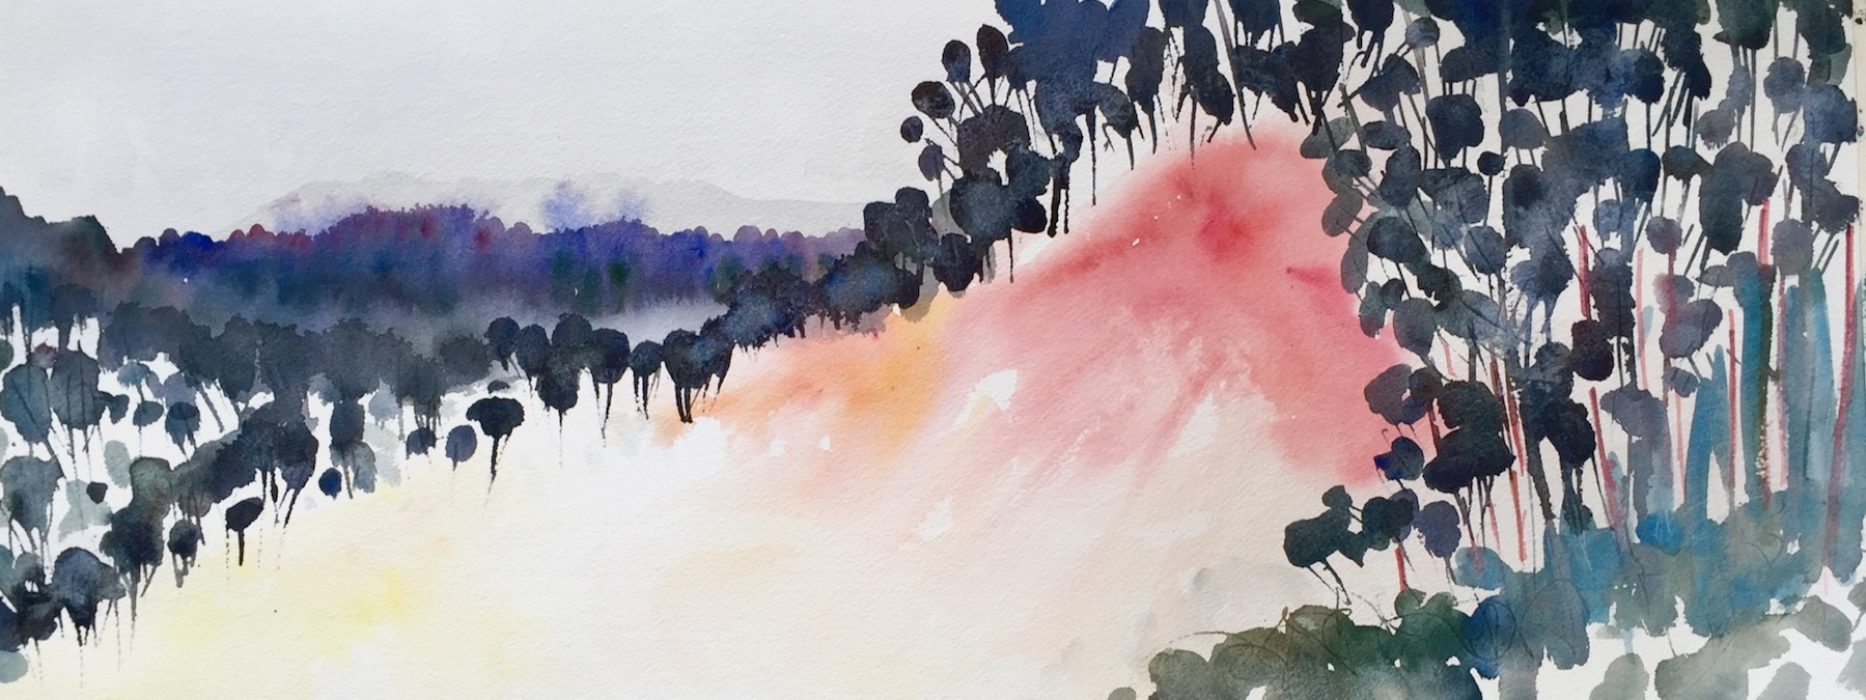 Fog out of the Trees, Cantabria Spain 2019 30x60cms